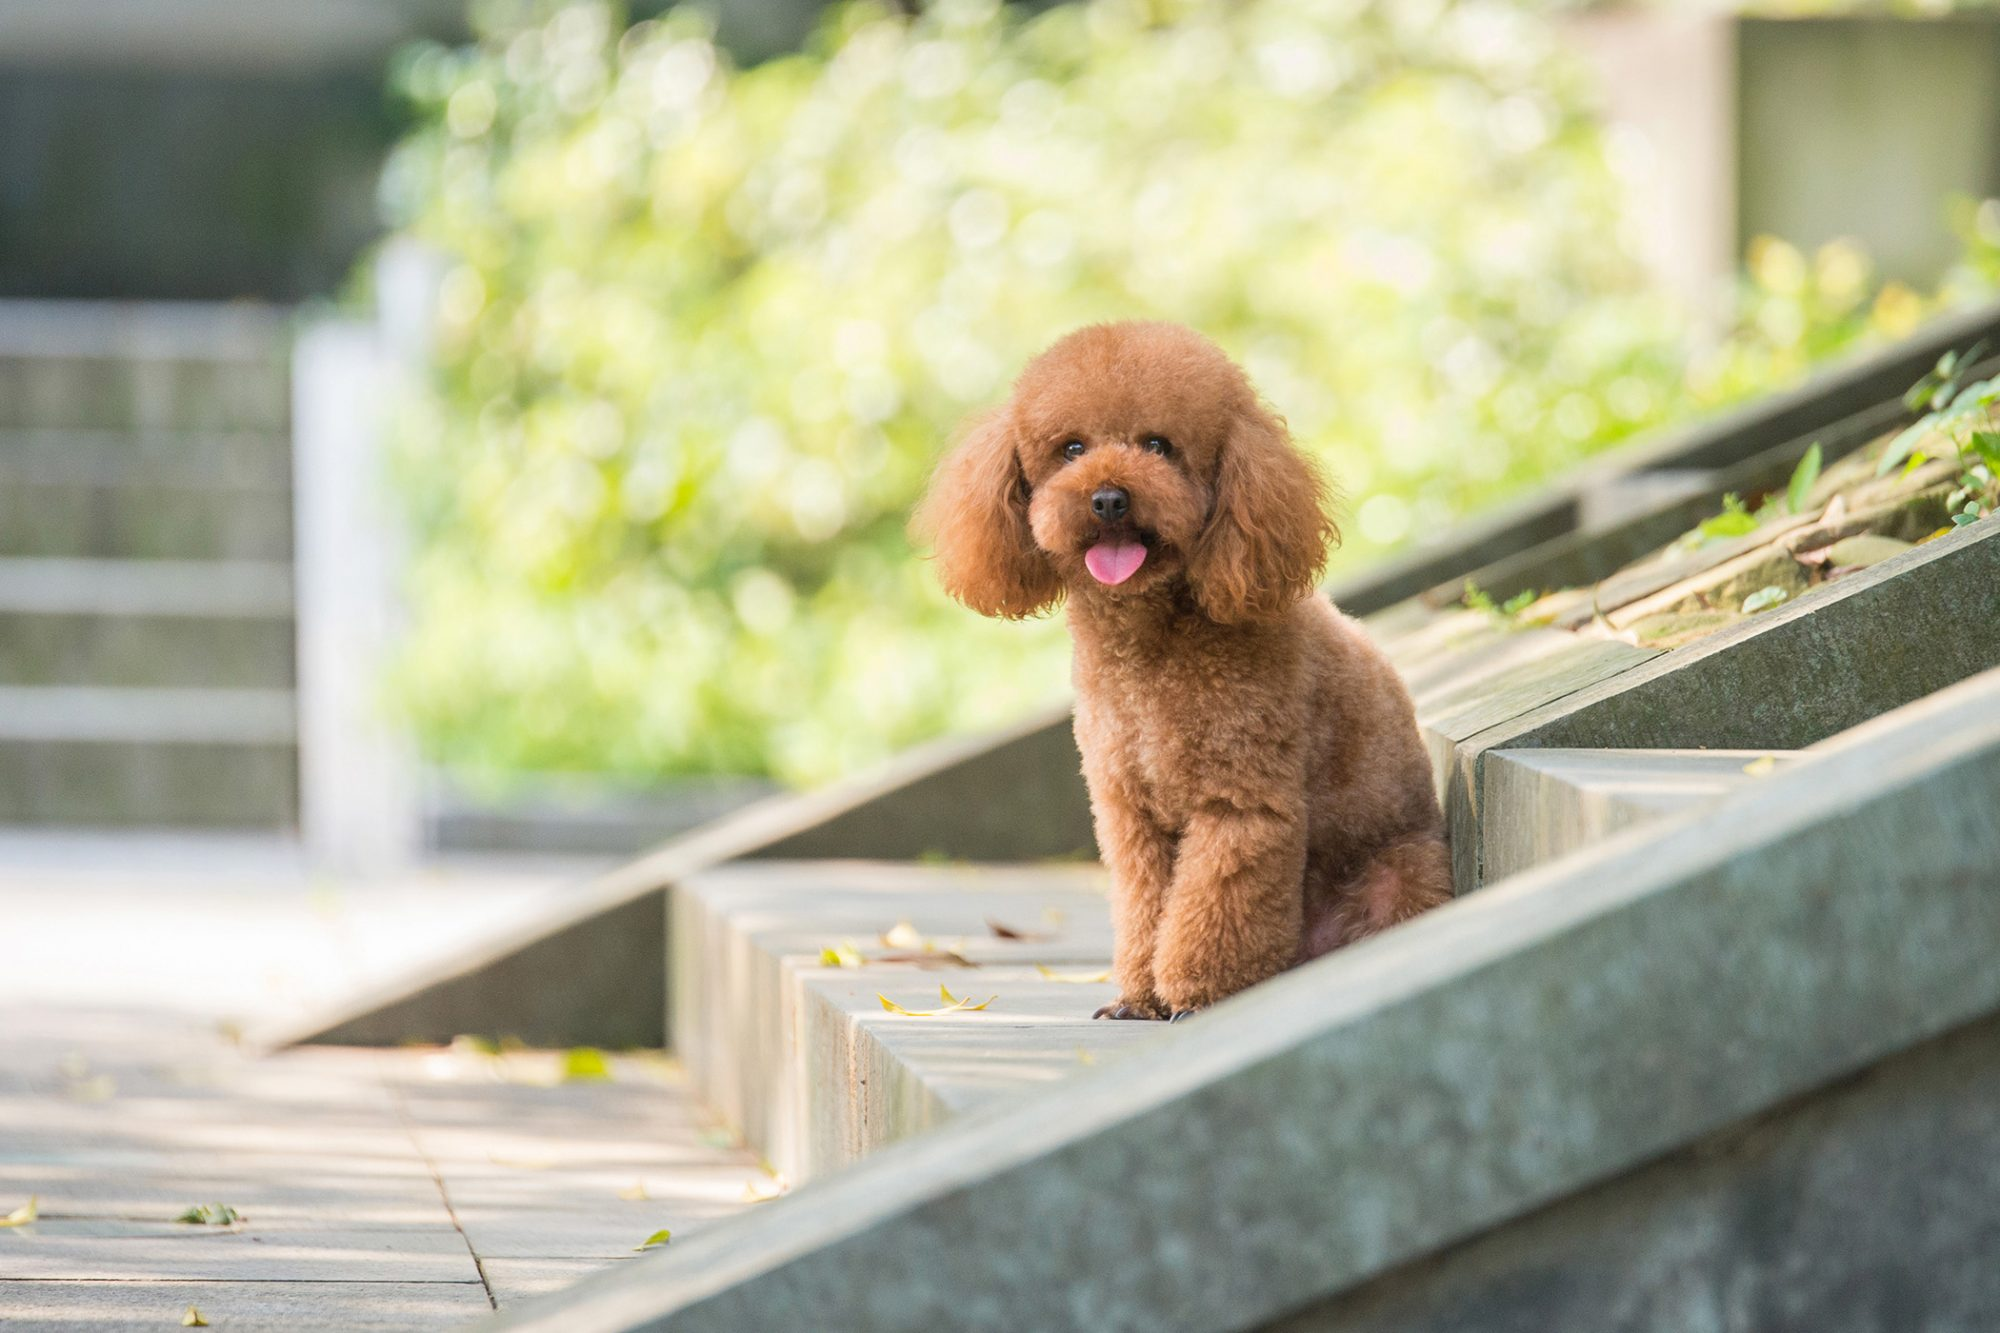 Toy poodle sits on concrete steps